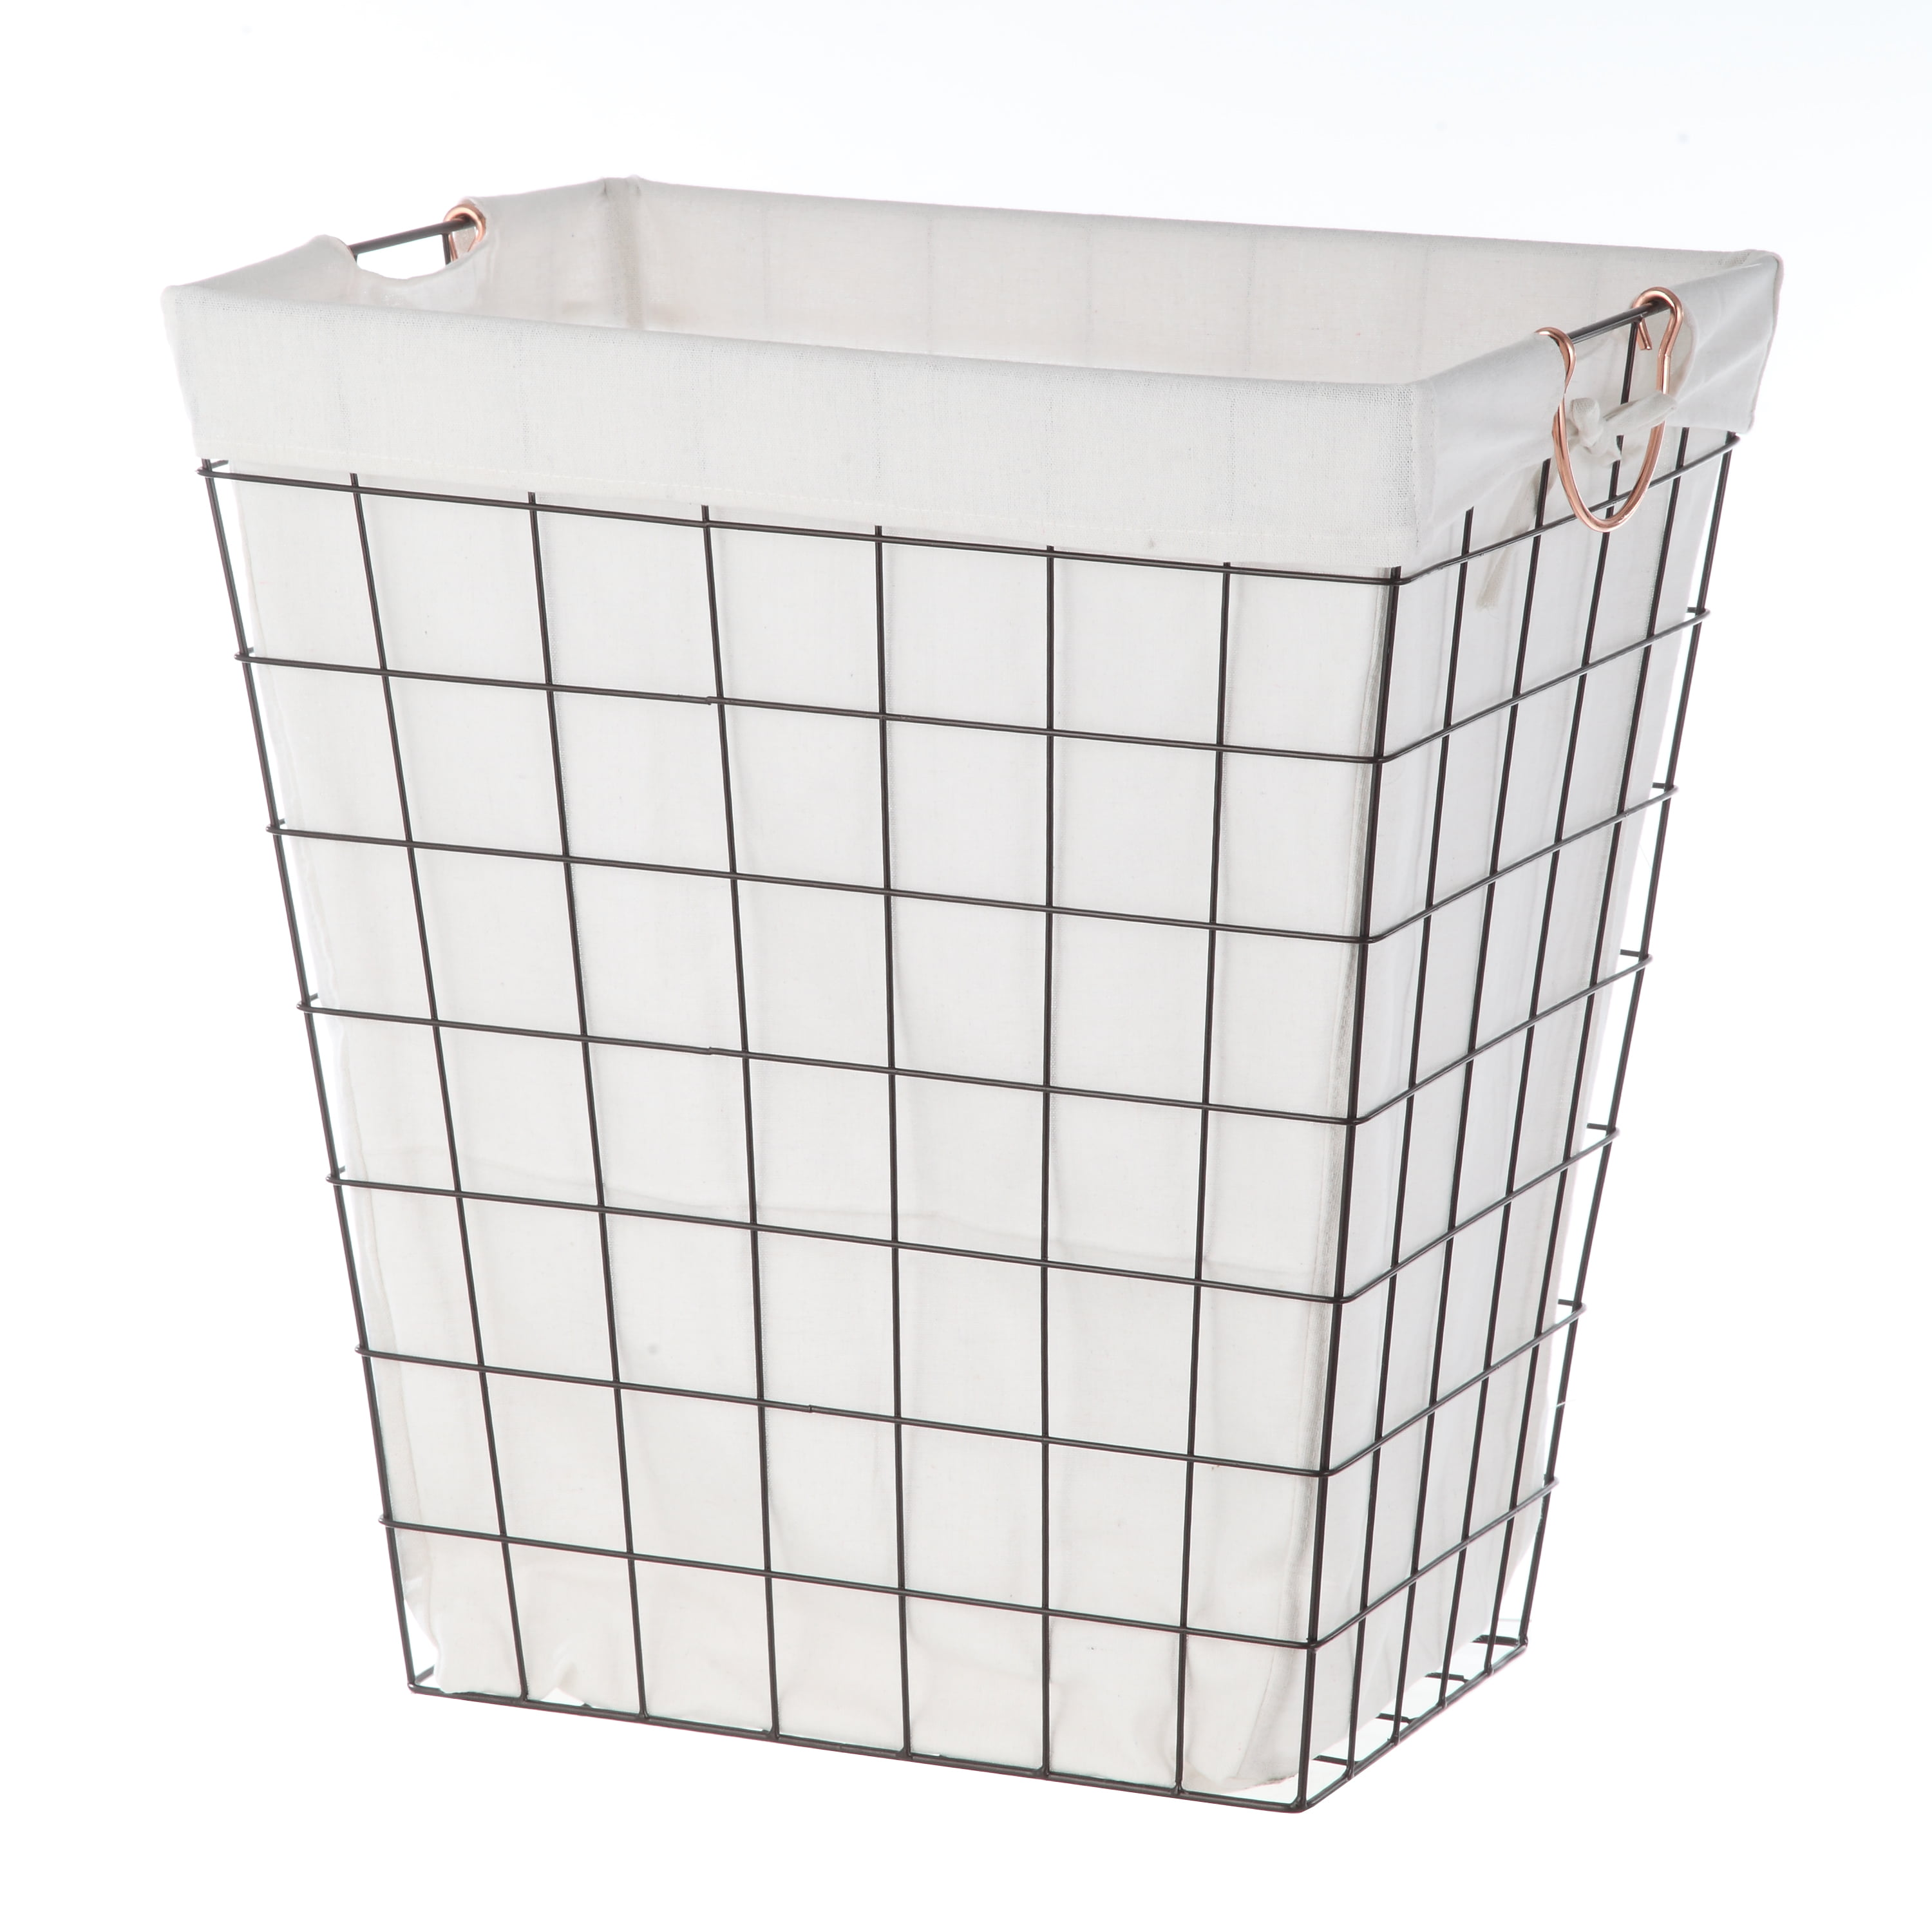 Better Homes & Garden Rectangle Wire Laundry Hamper with Liner